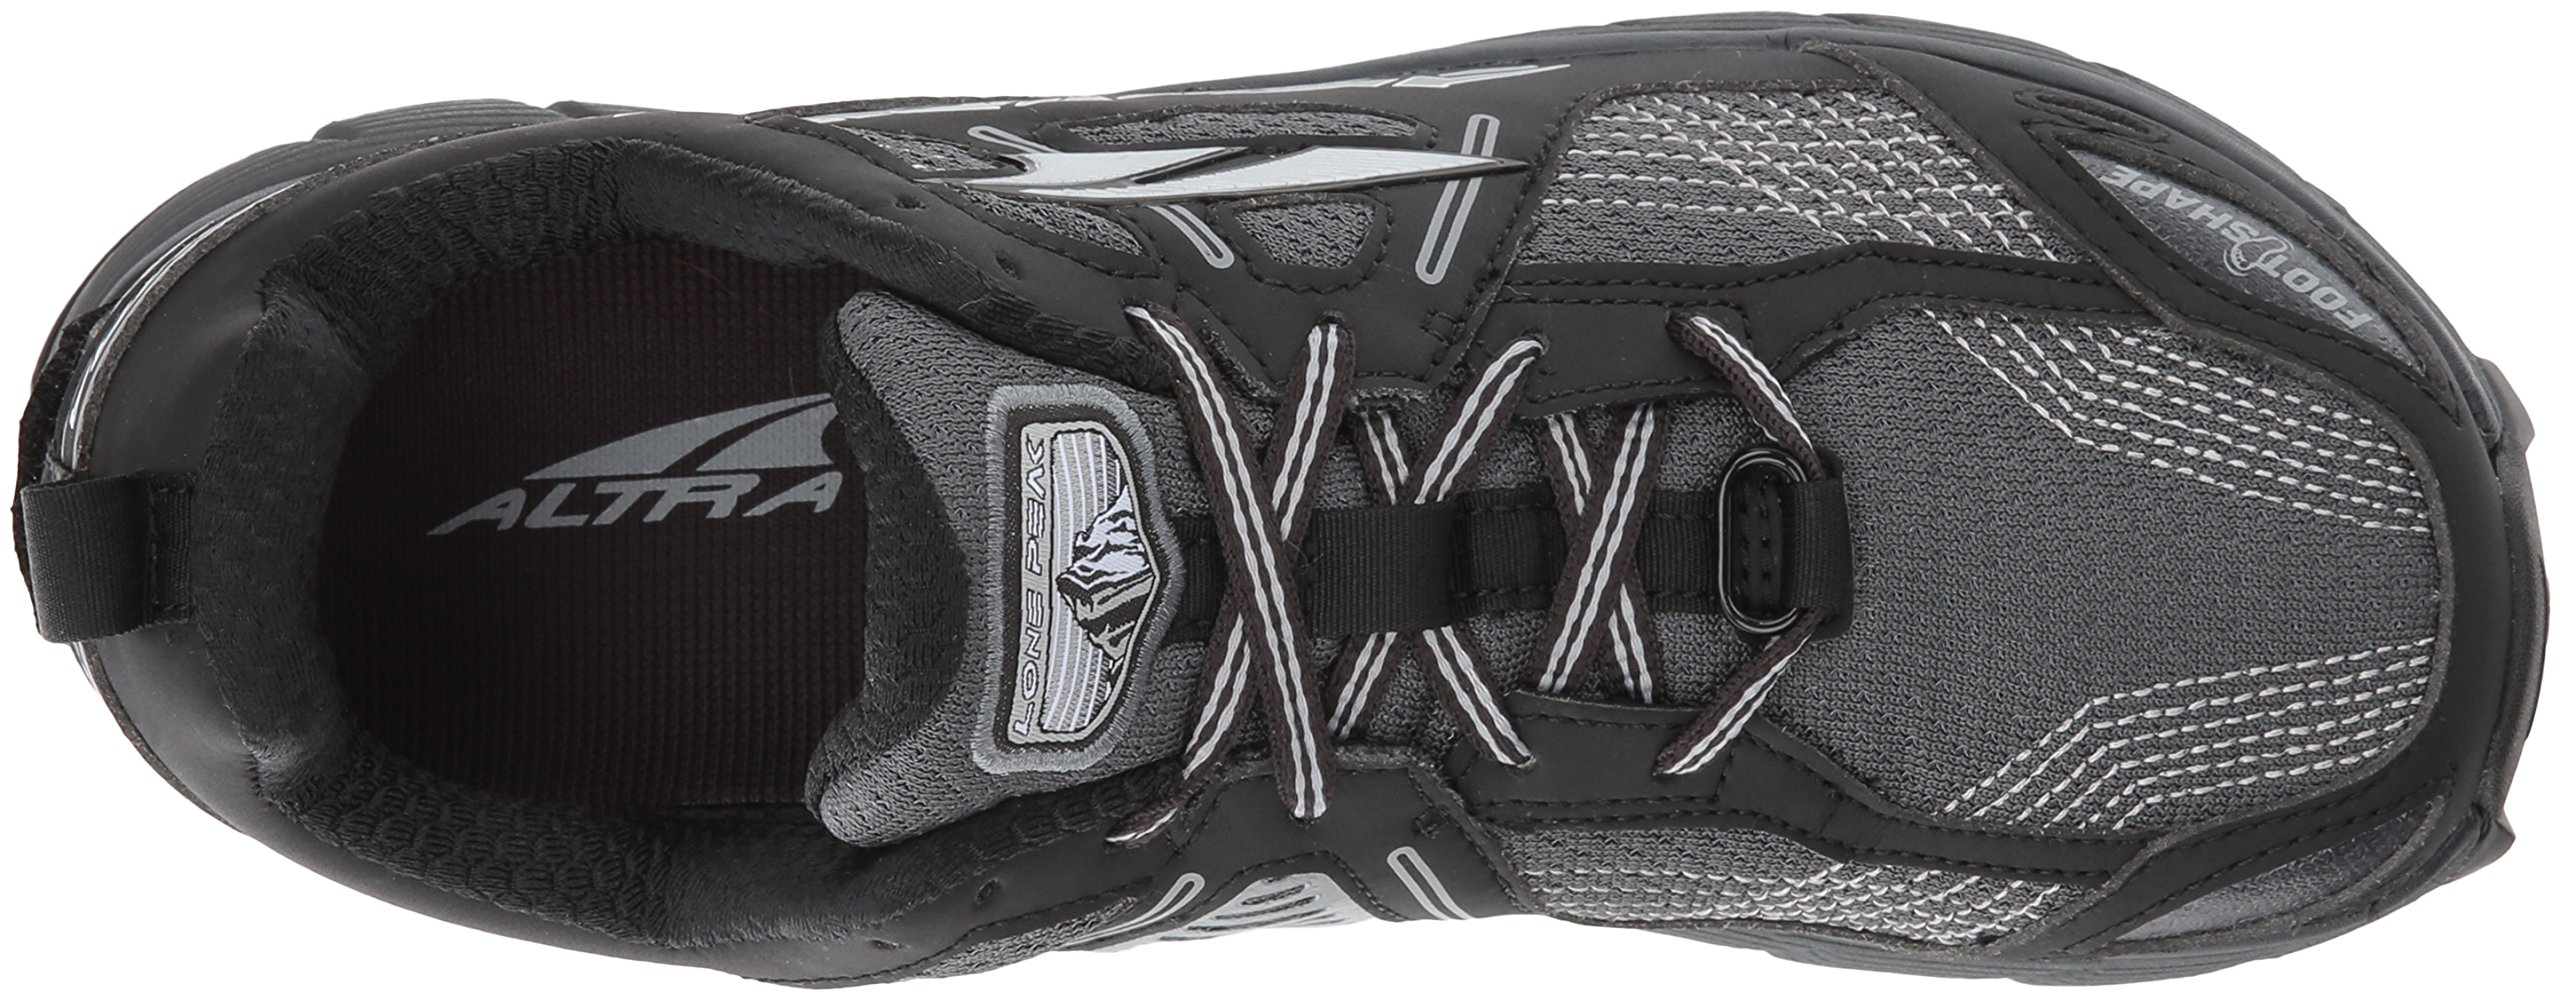 Altra Women's Lone Peak 3.5 Running Shoe, Black, 8.5 B US by Altra (Image #8)